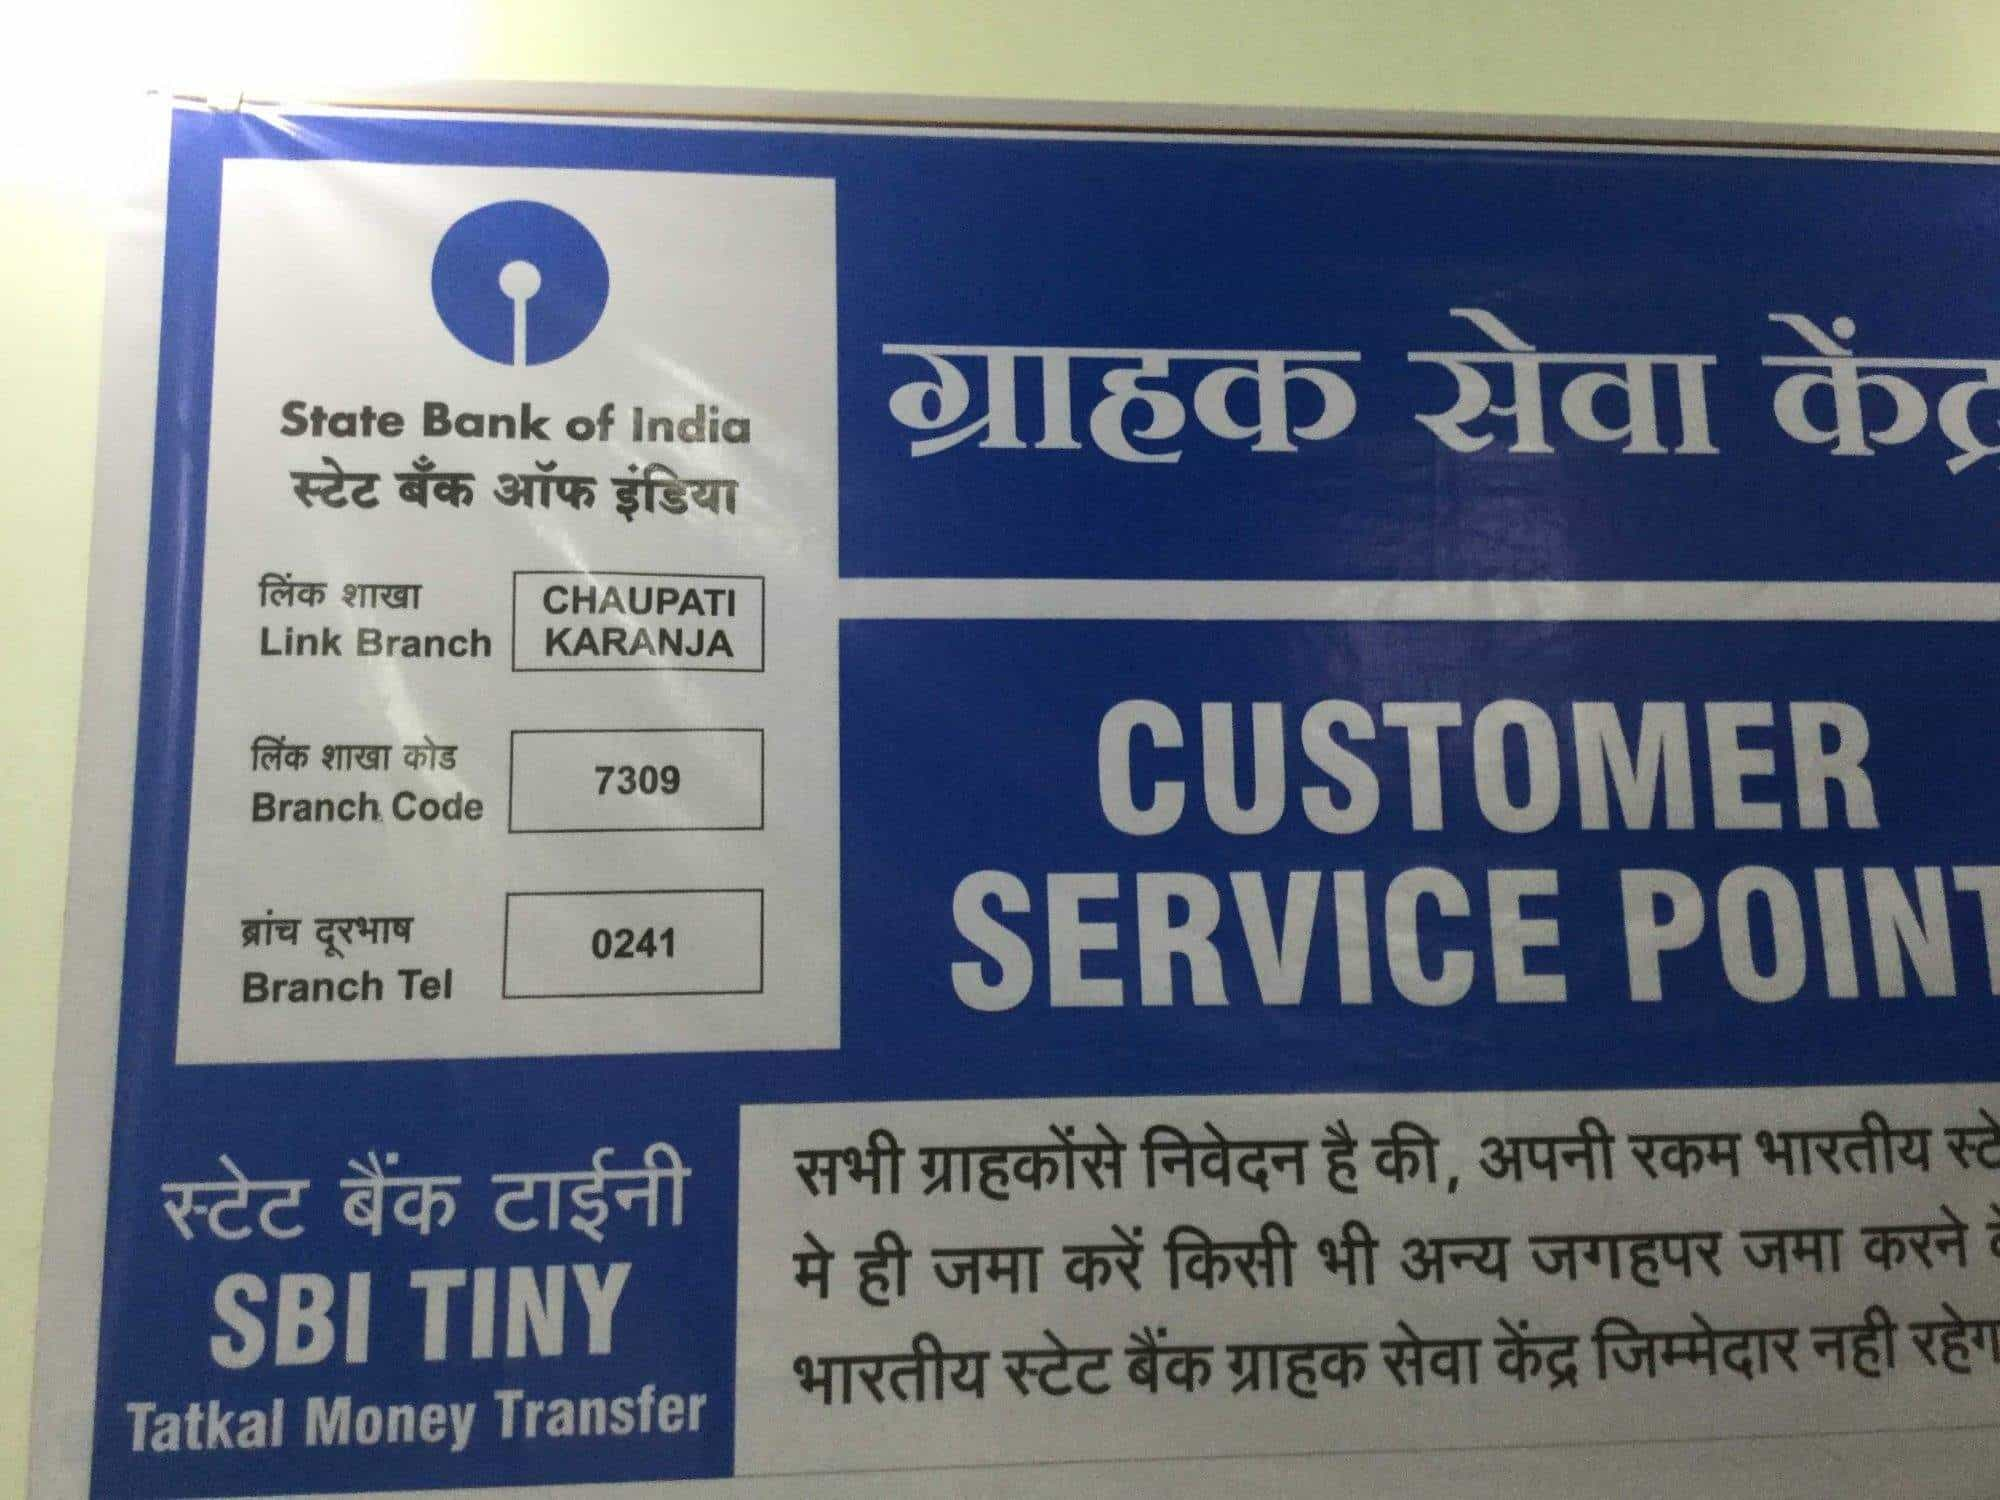 Sbi Csp Dilli Gate Money Transfer Agencies in Ahmednagar Justdial